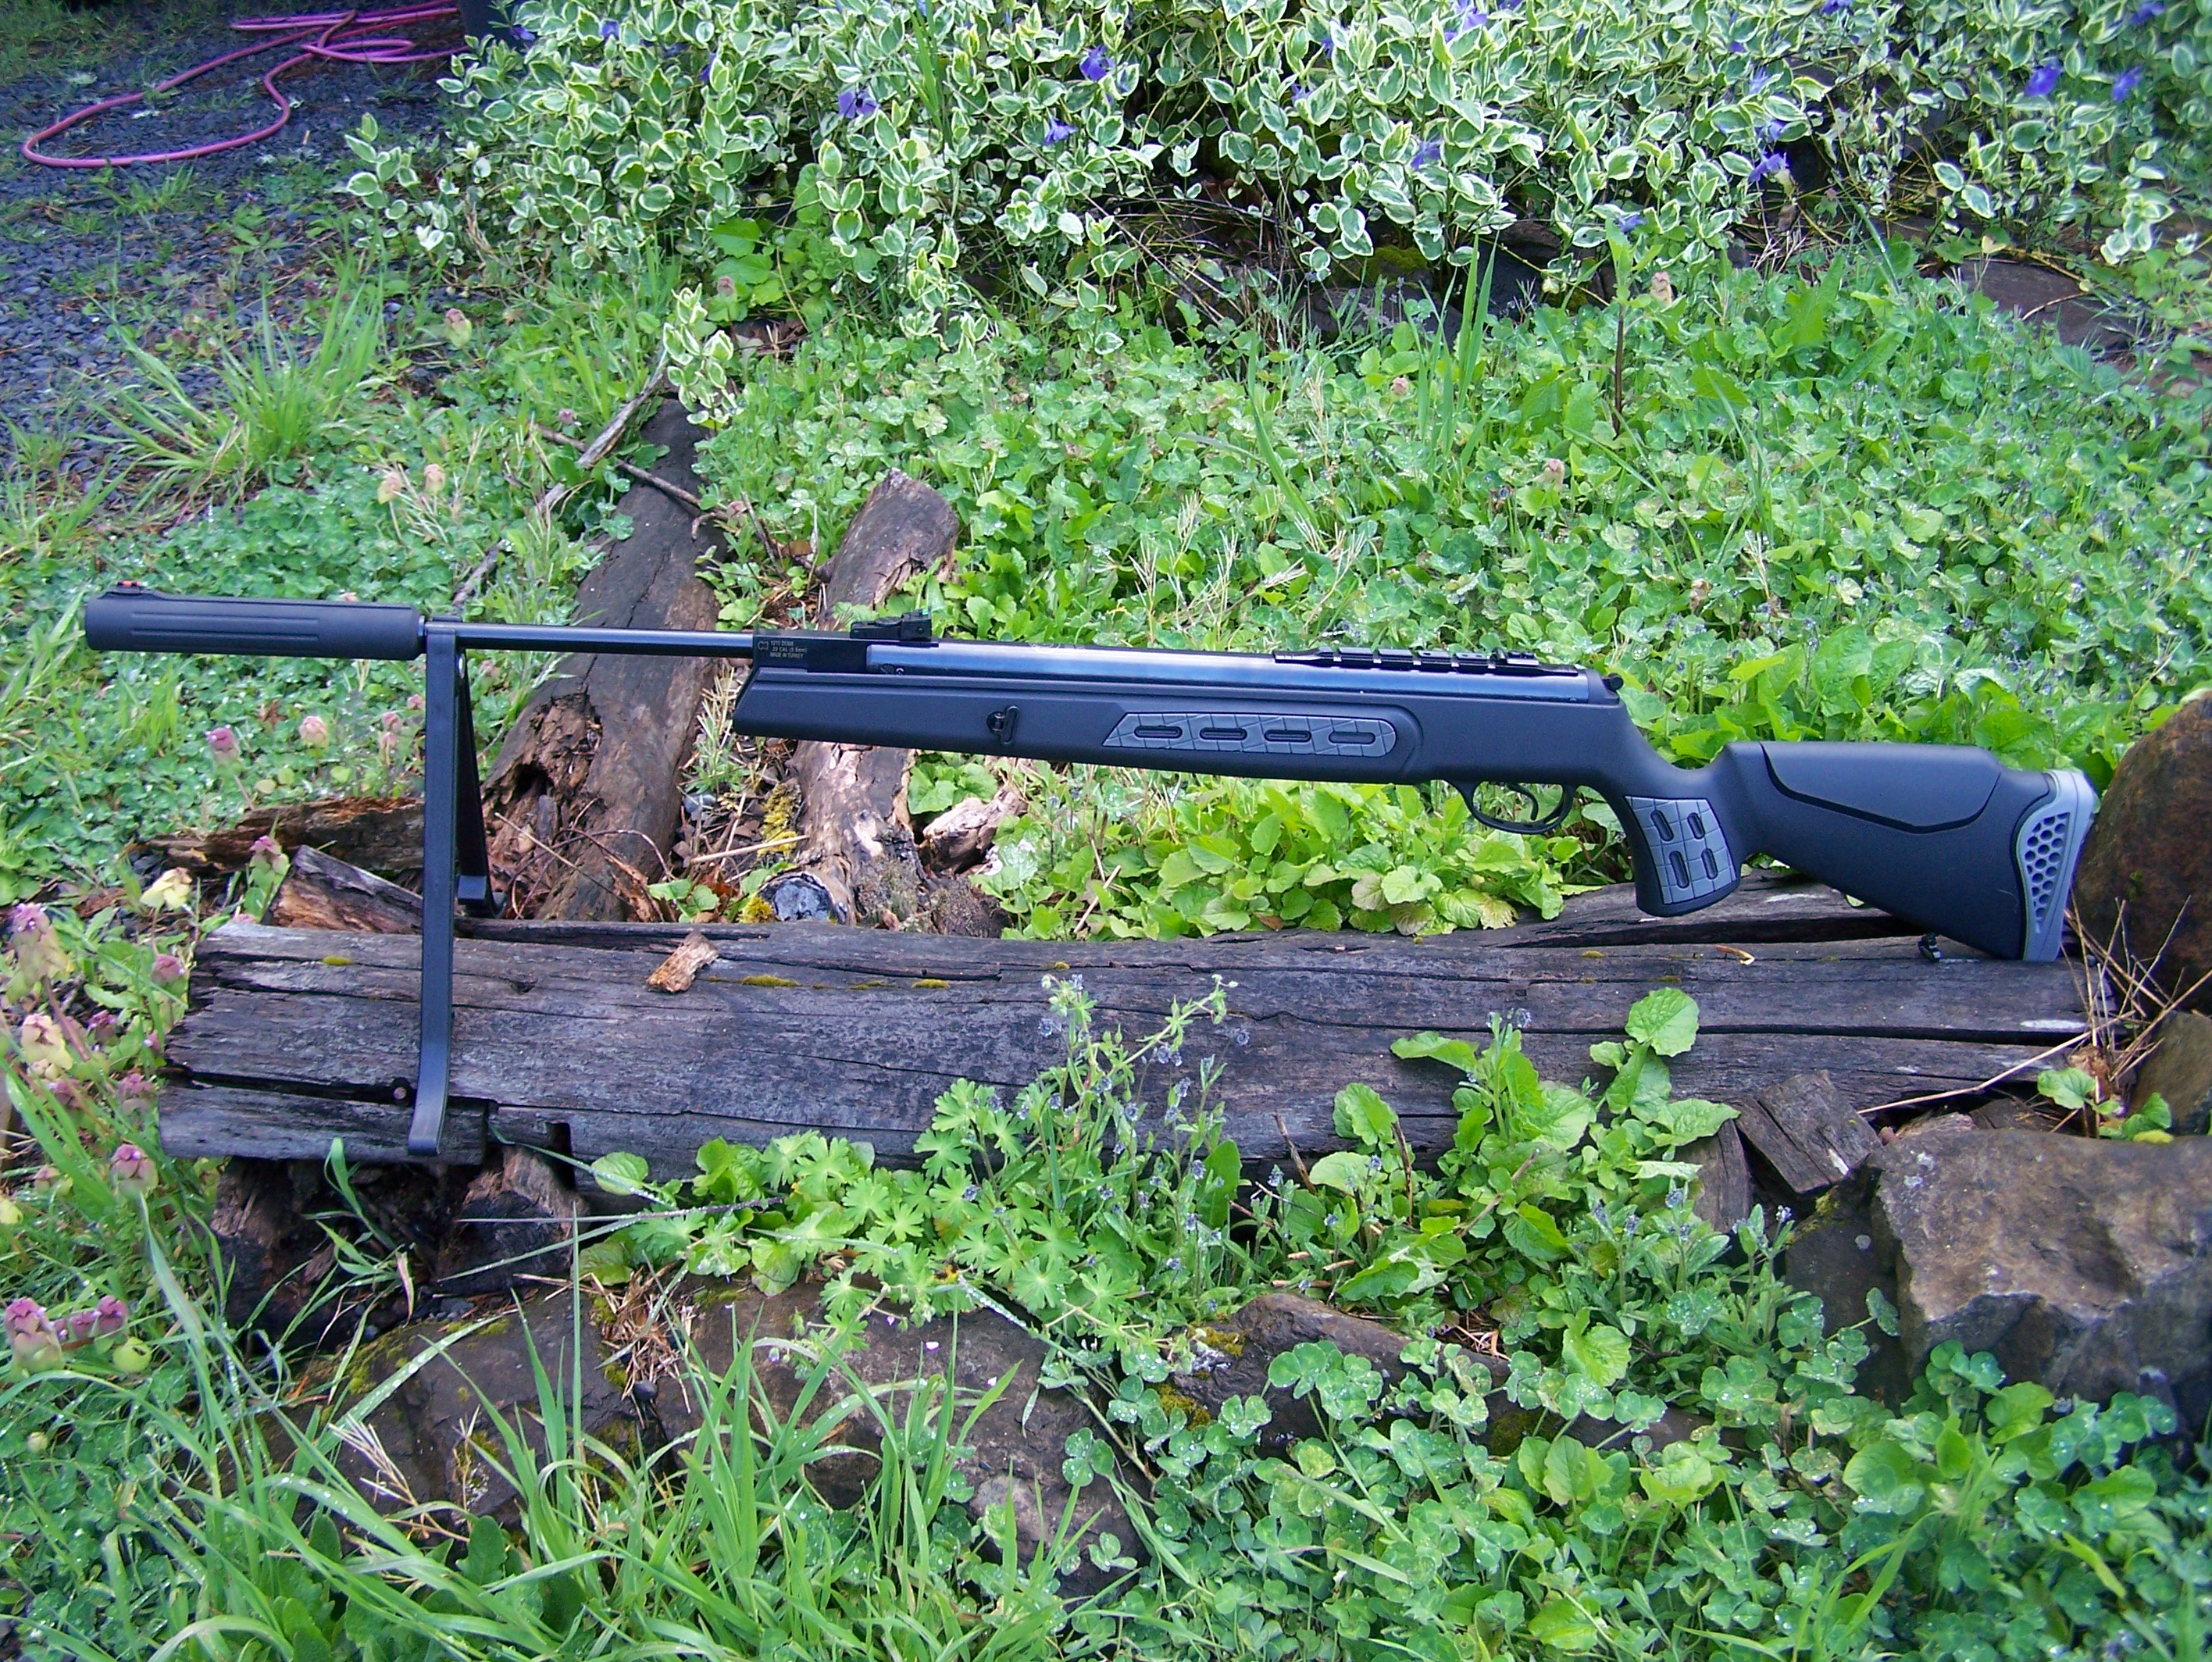 Review: Hatsan 125 Sniper Vortex Airgun Rifle